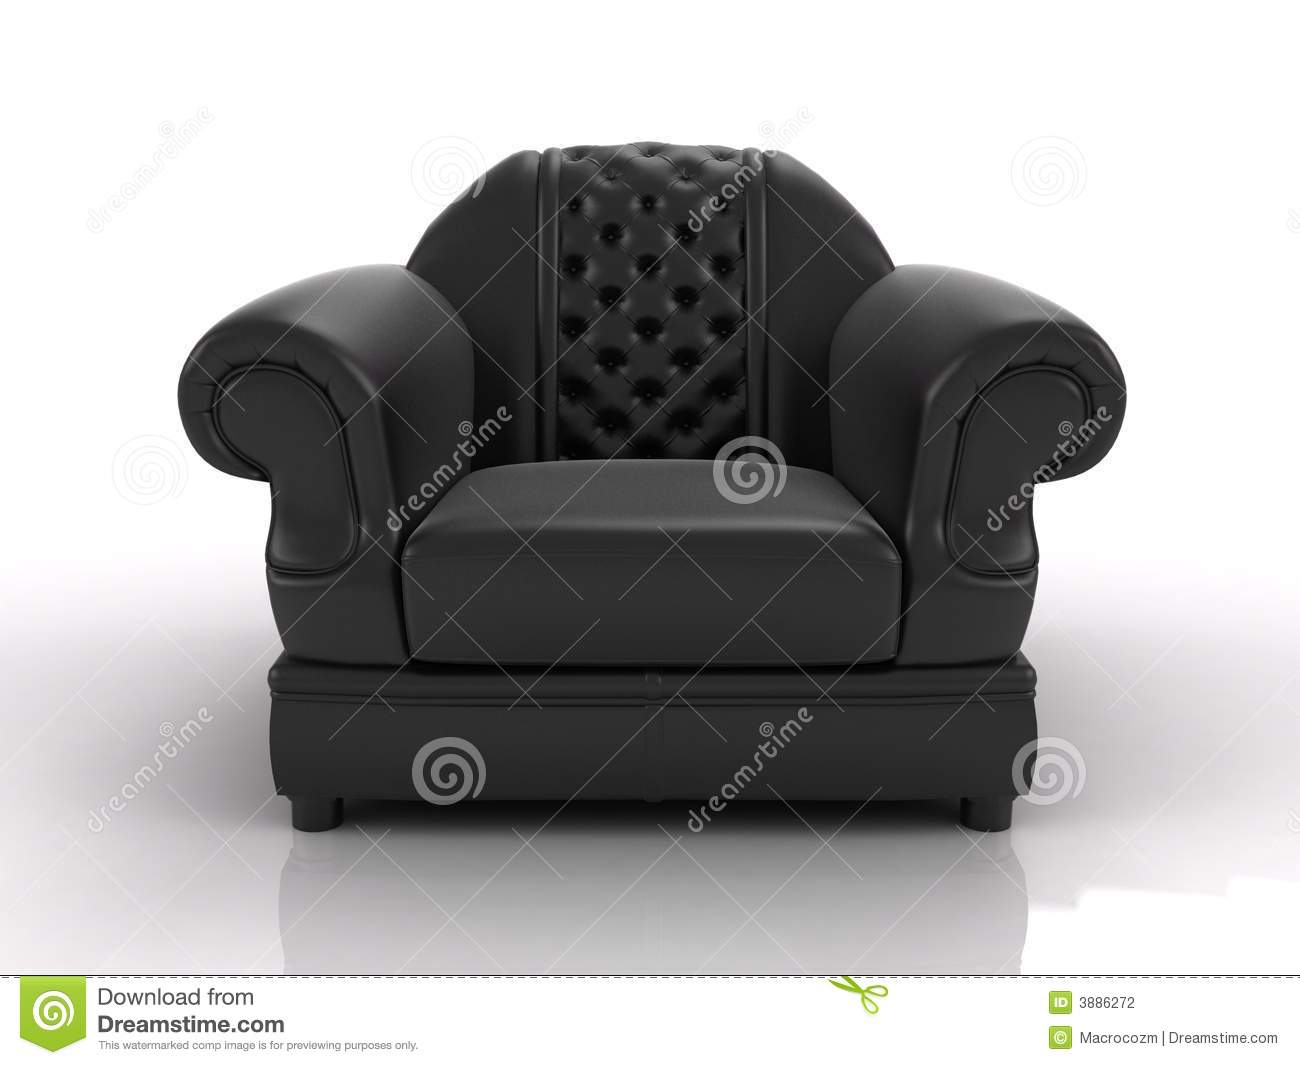 Black leather armchair stock photography image 3886272